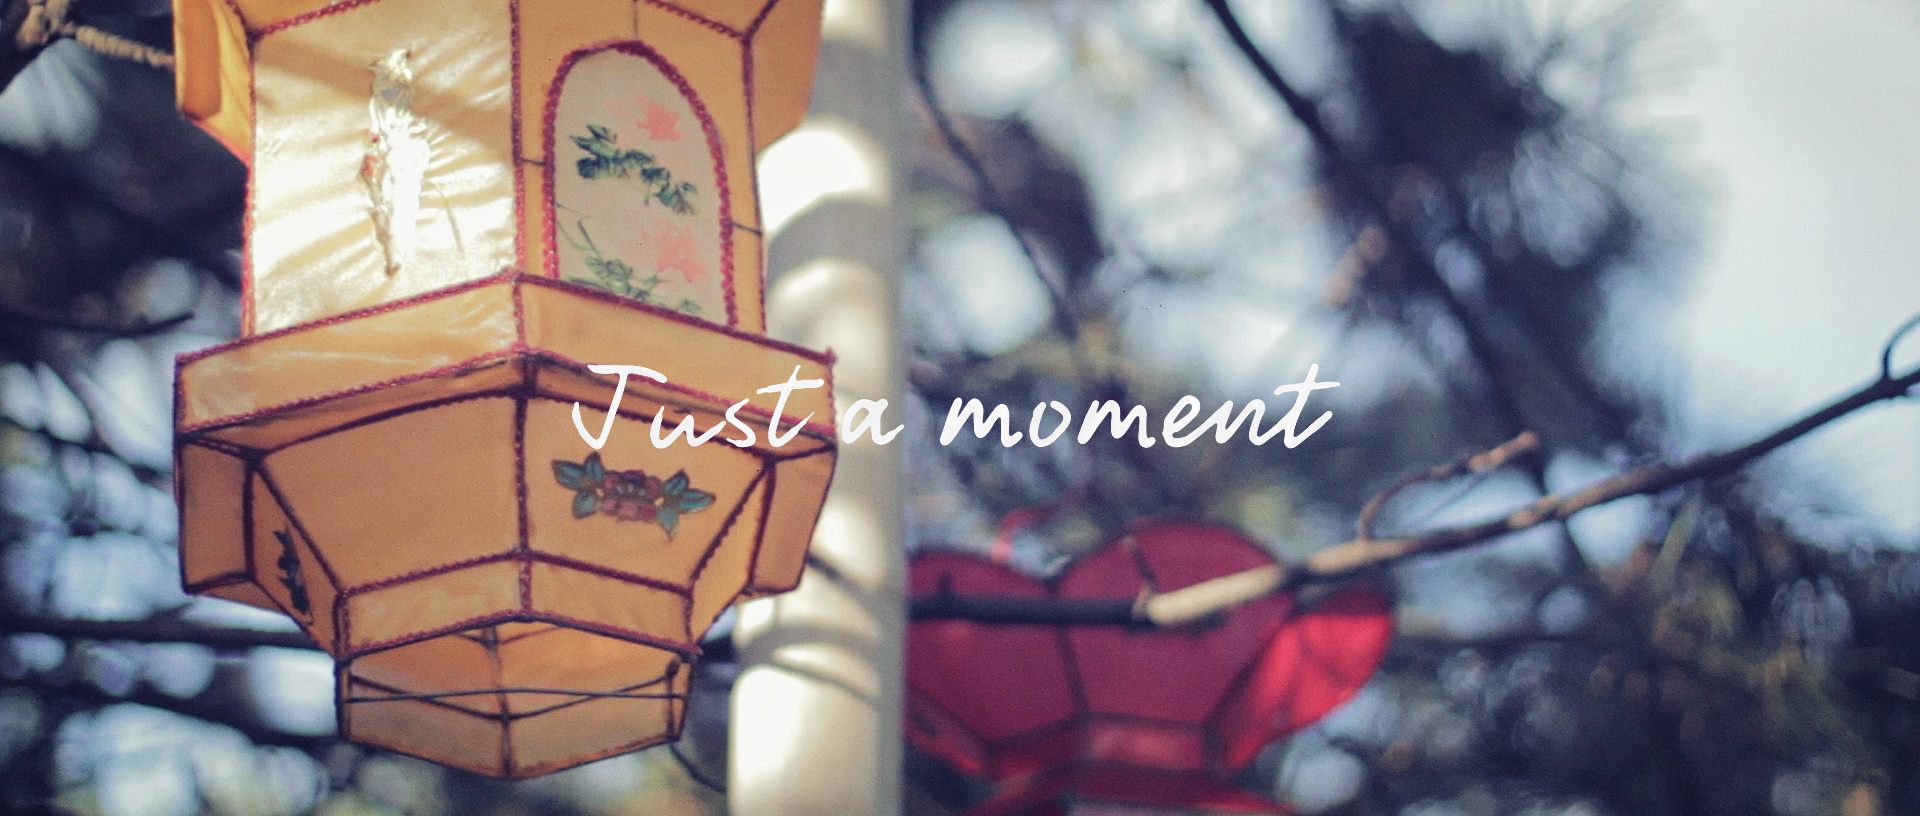 1-Just_a_moment